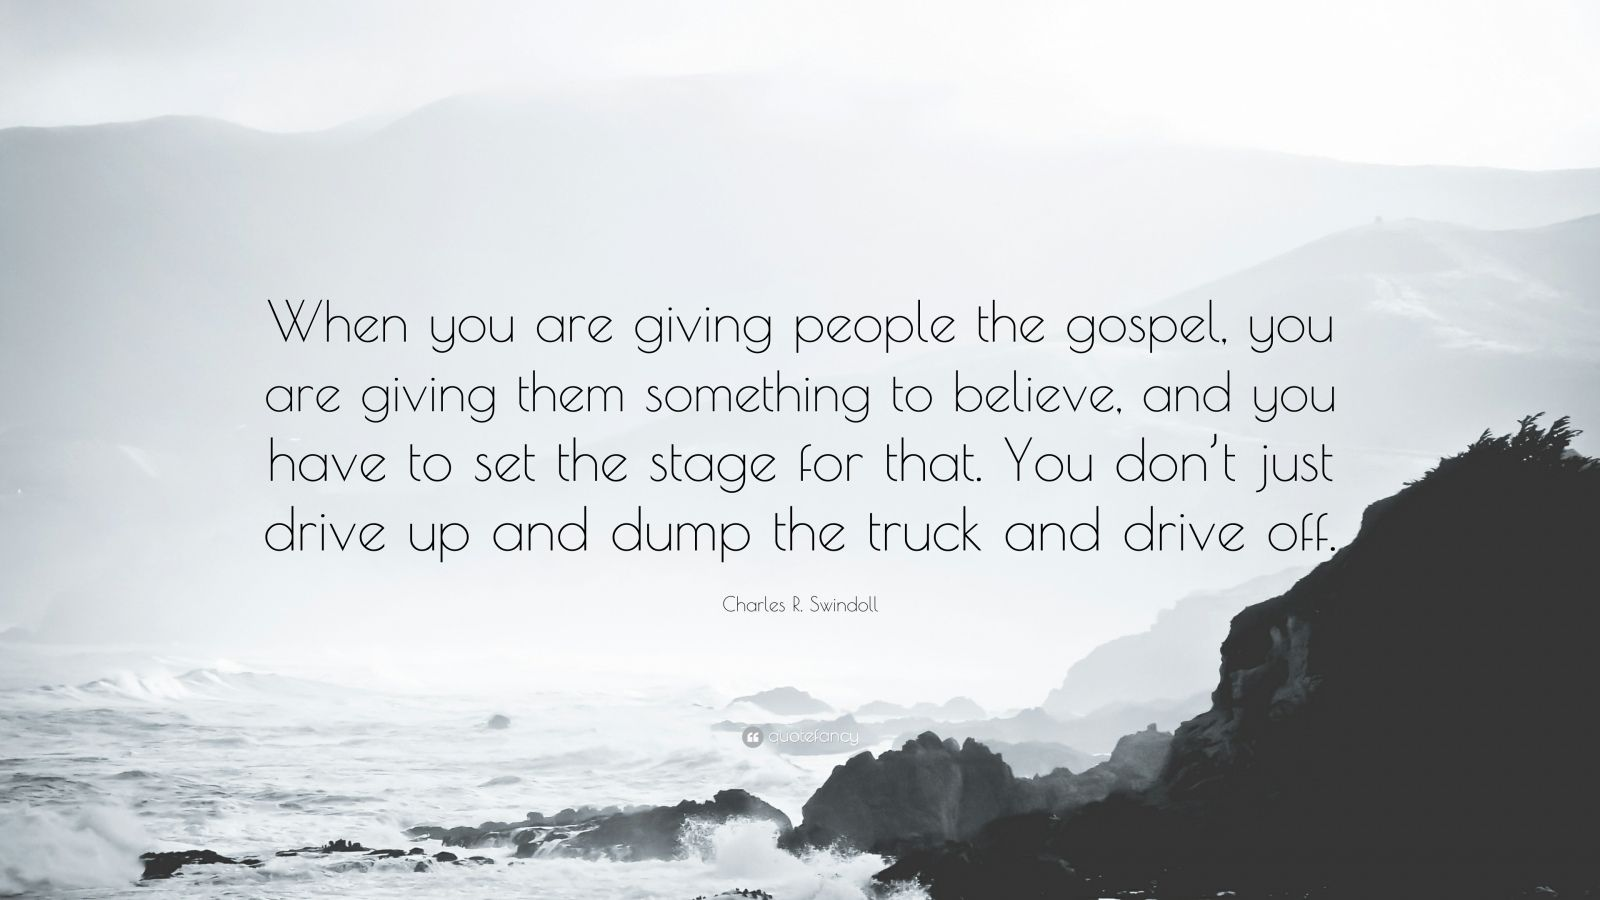 """Charles R. Swindoll Quote: """"When you are giving people the gospel, you are giving them something to believe, and you have to set the stage for that. You don't just drive up and dump the truck and drive off."""""""